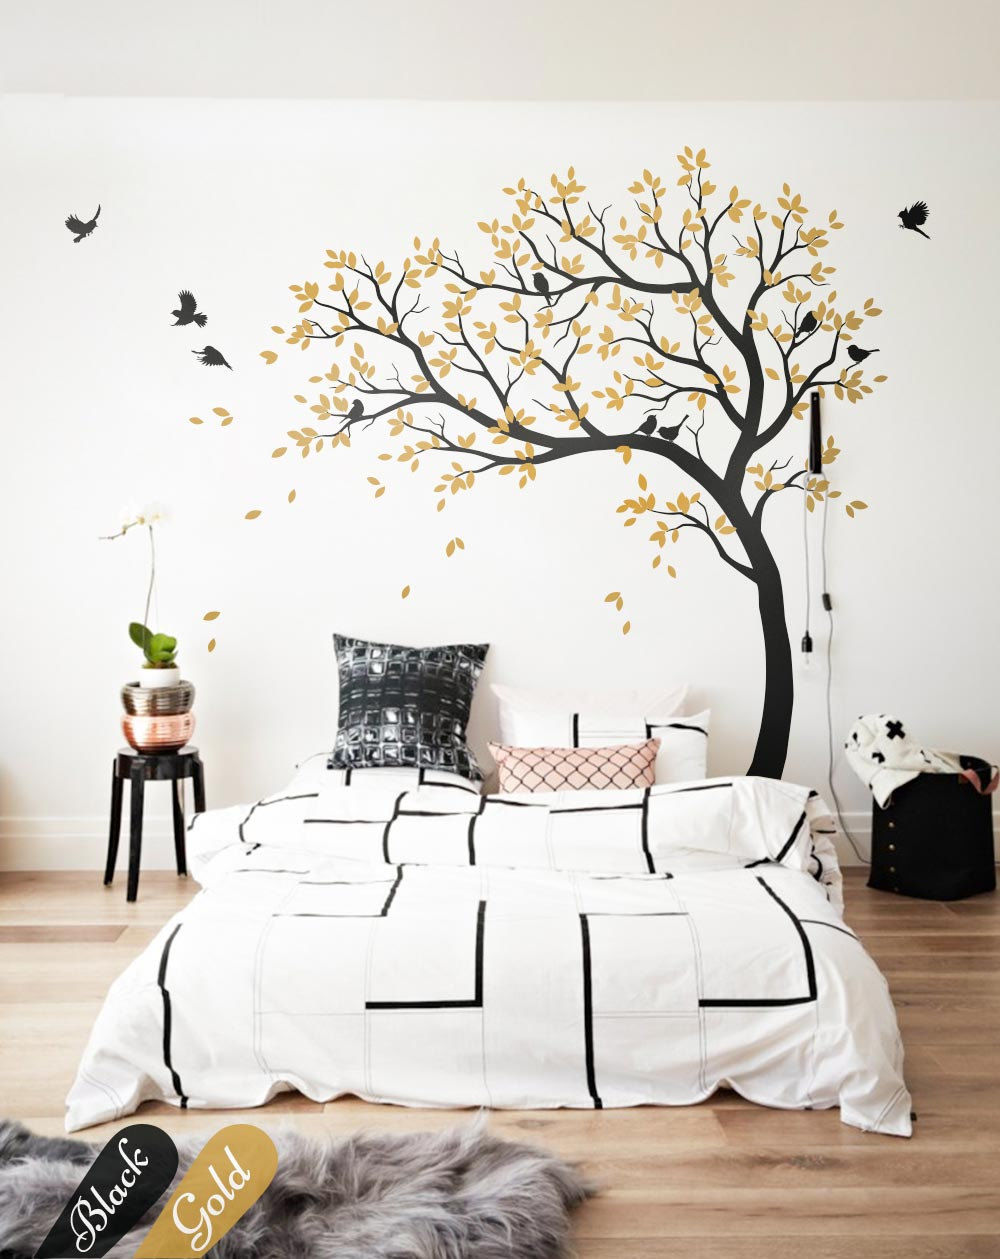 Aliexpresscom  Buy Large Black Tree Nursery Wall Design With - Diy wall decor birds